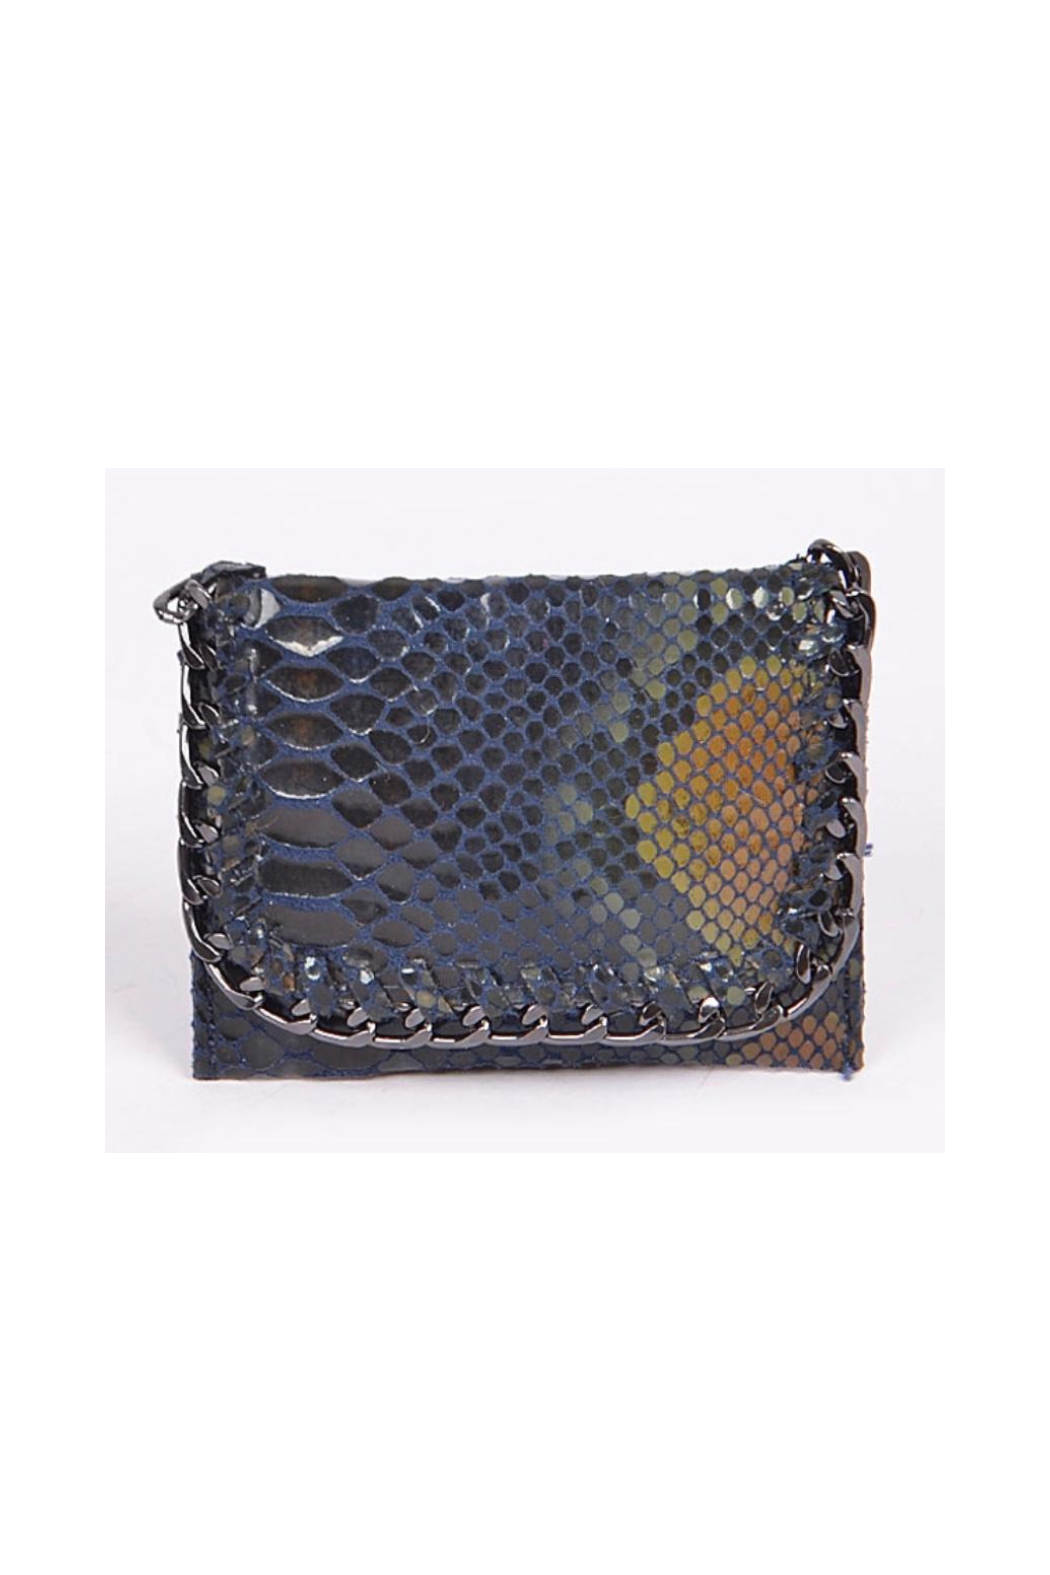 Private Label mini wallet with metal detail - Front Cropped Image